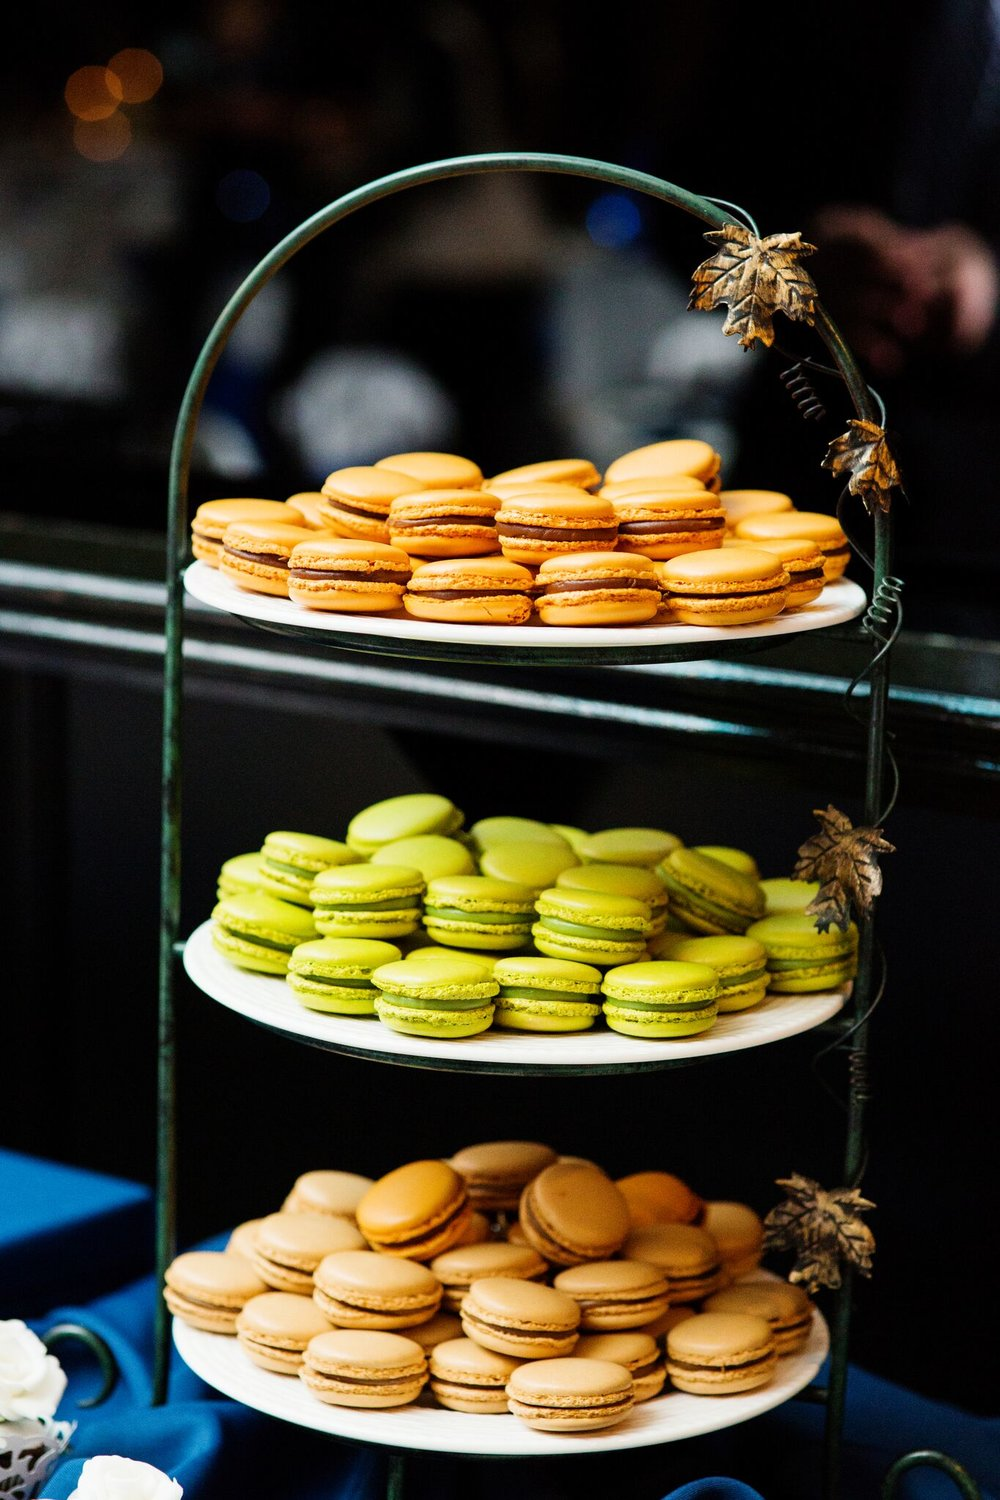 Bought Francois Payard macaroons on a borrowed plate.  Pretty right?